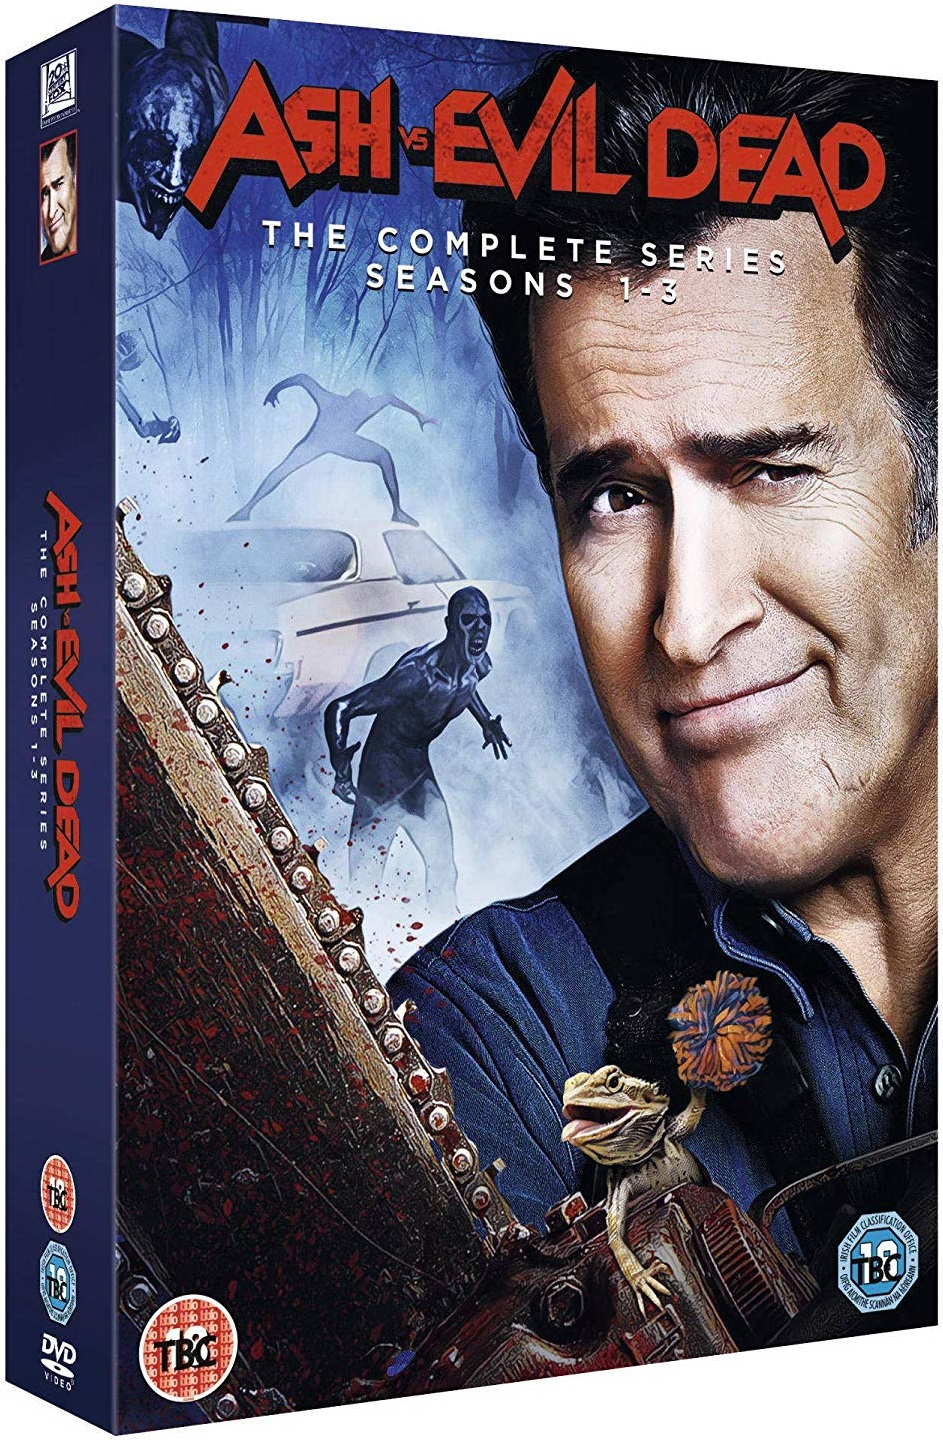 Ash vs Evil Dead Season 1-3 UK Blu-Ray Box Set